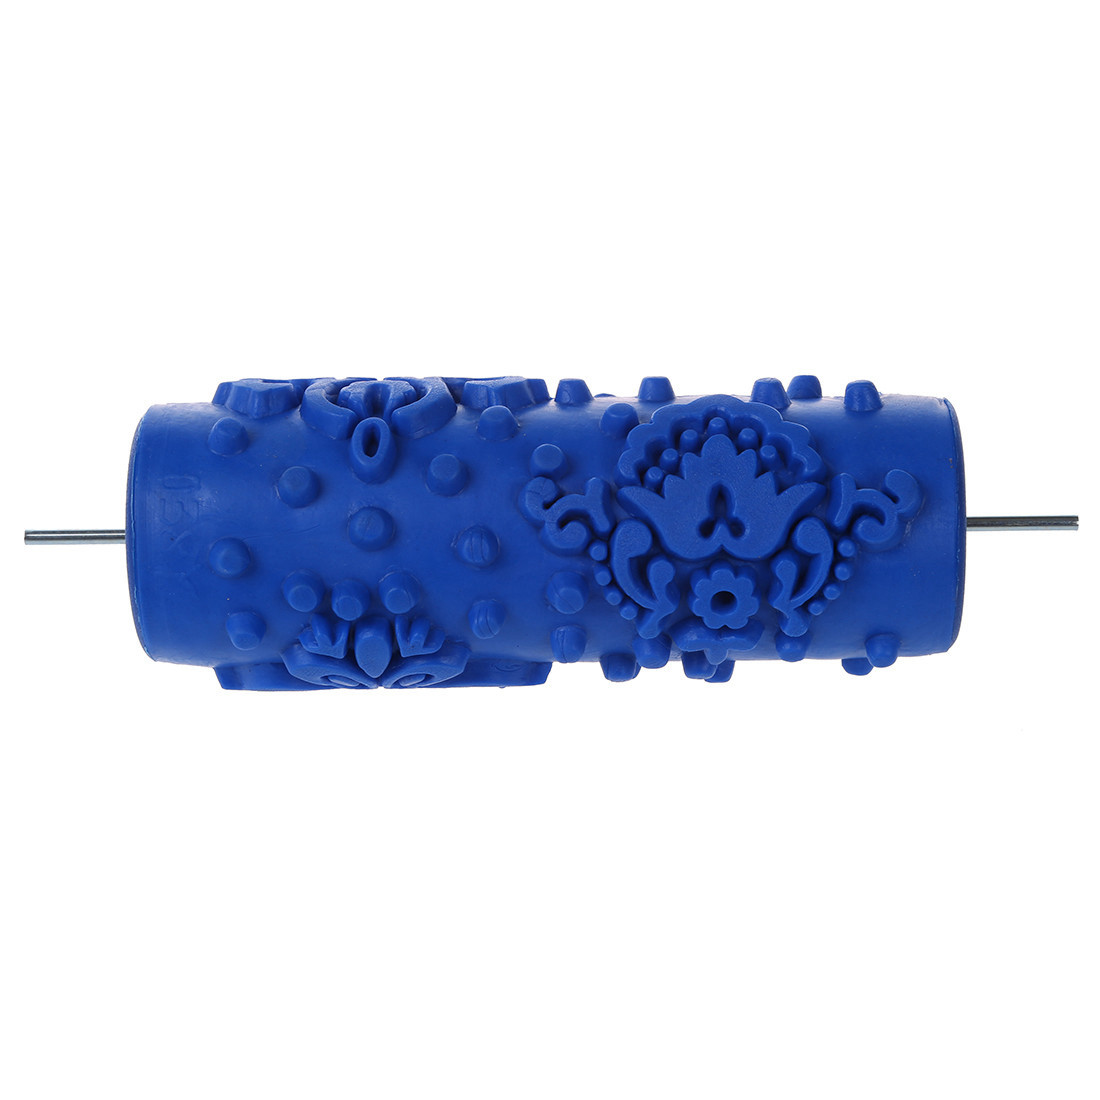 Hot Sale 15cm blue liquid decoration wallpaper painting knurled roller rubber roller without handle grip